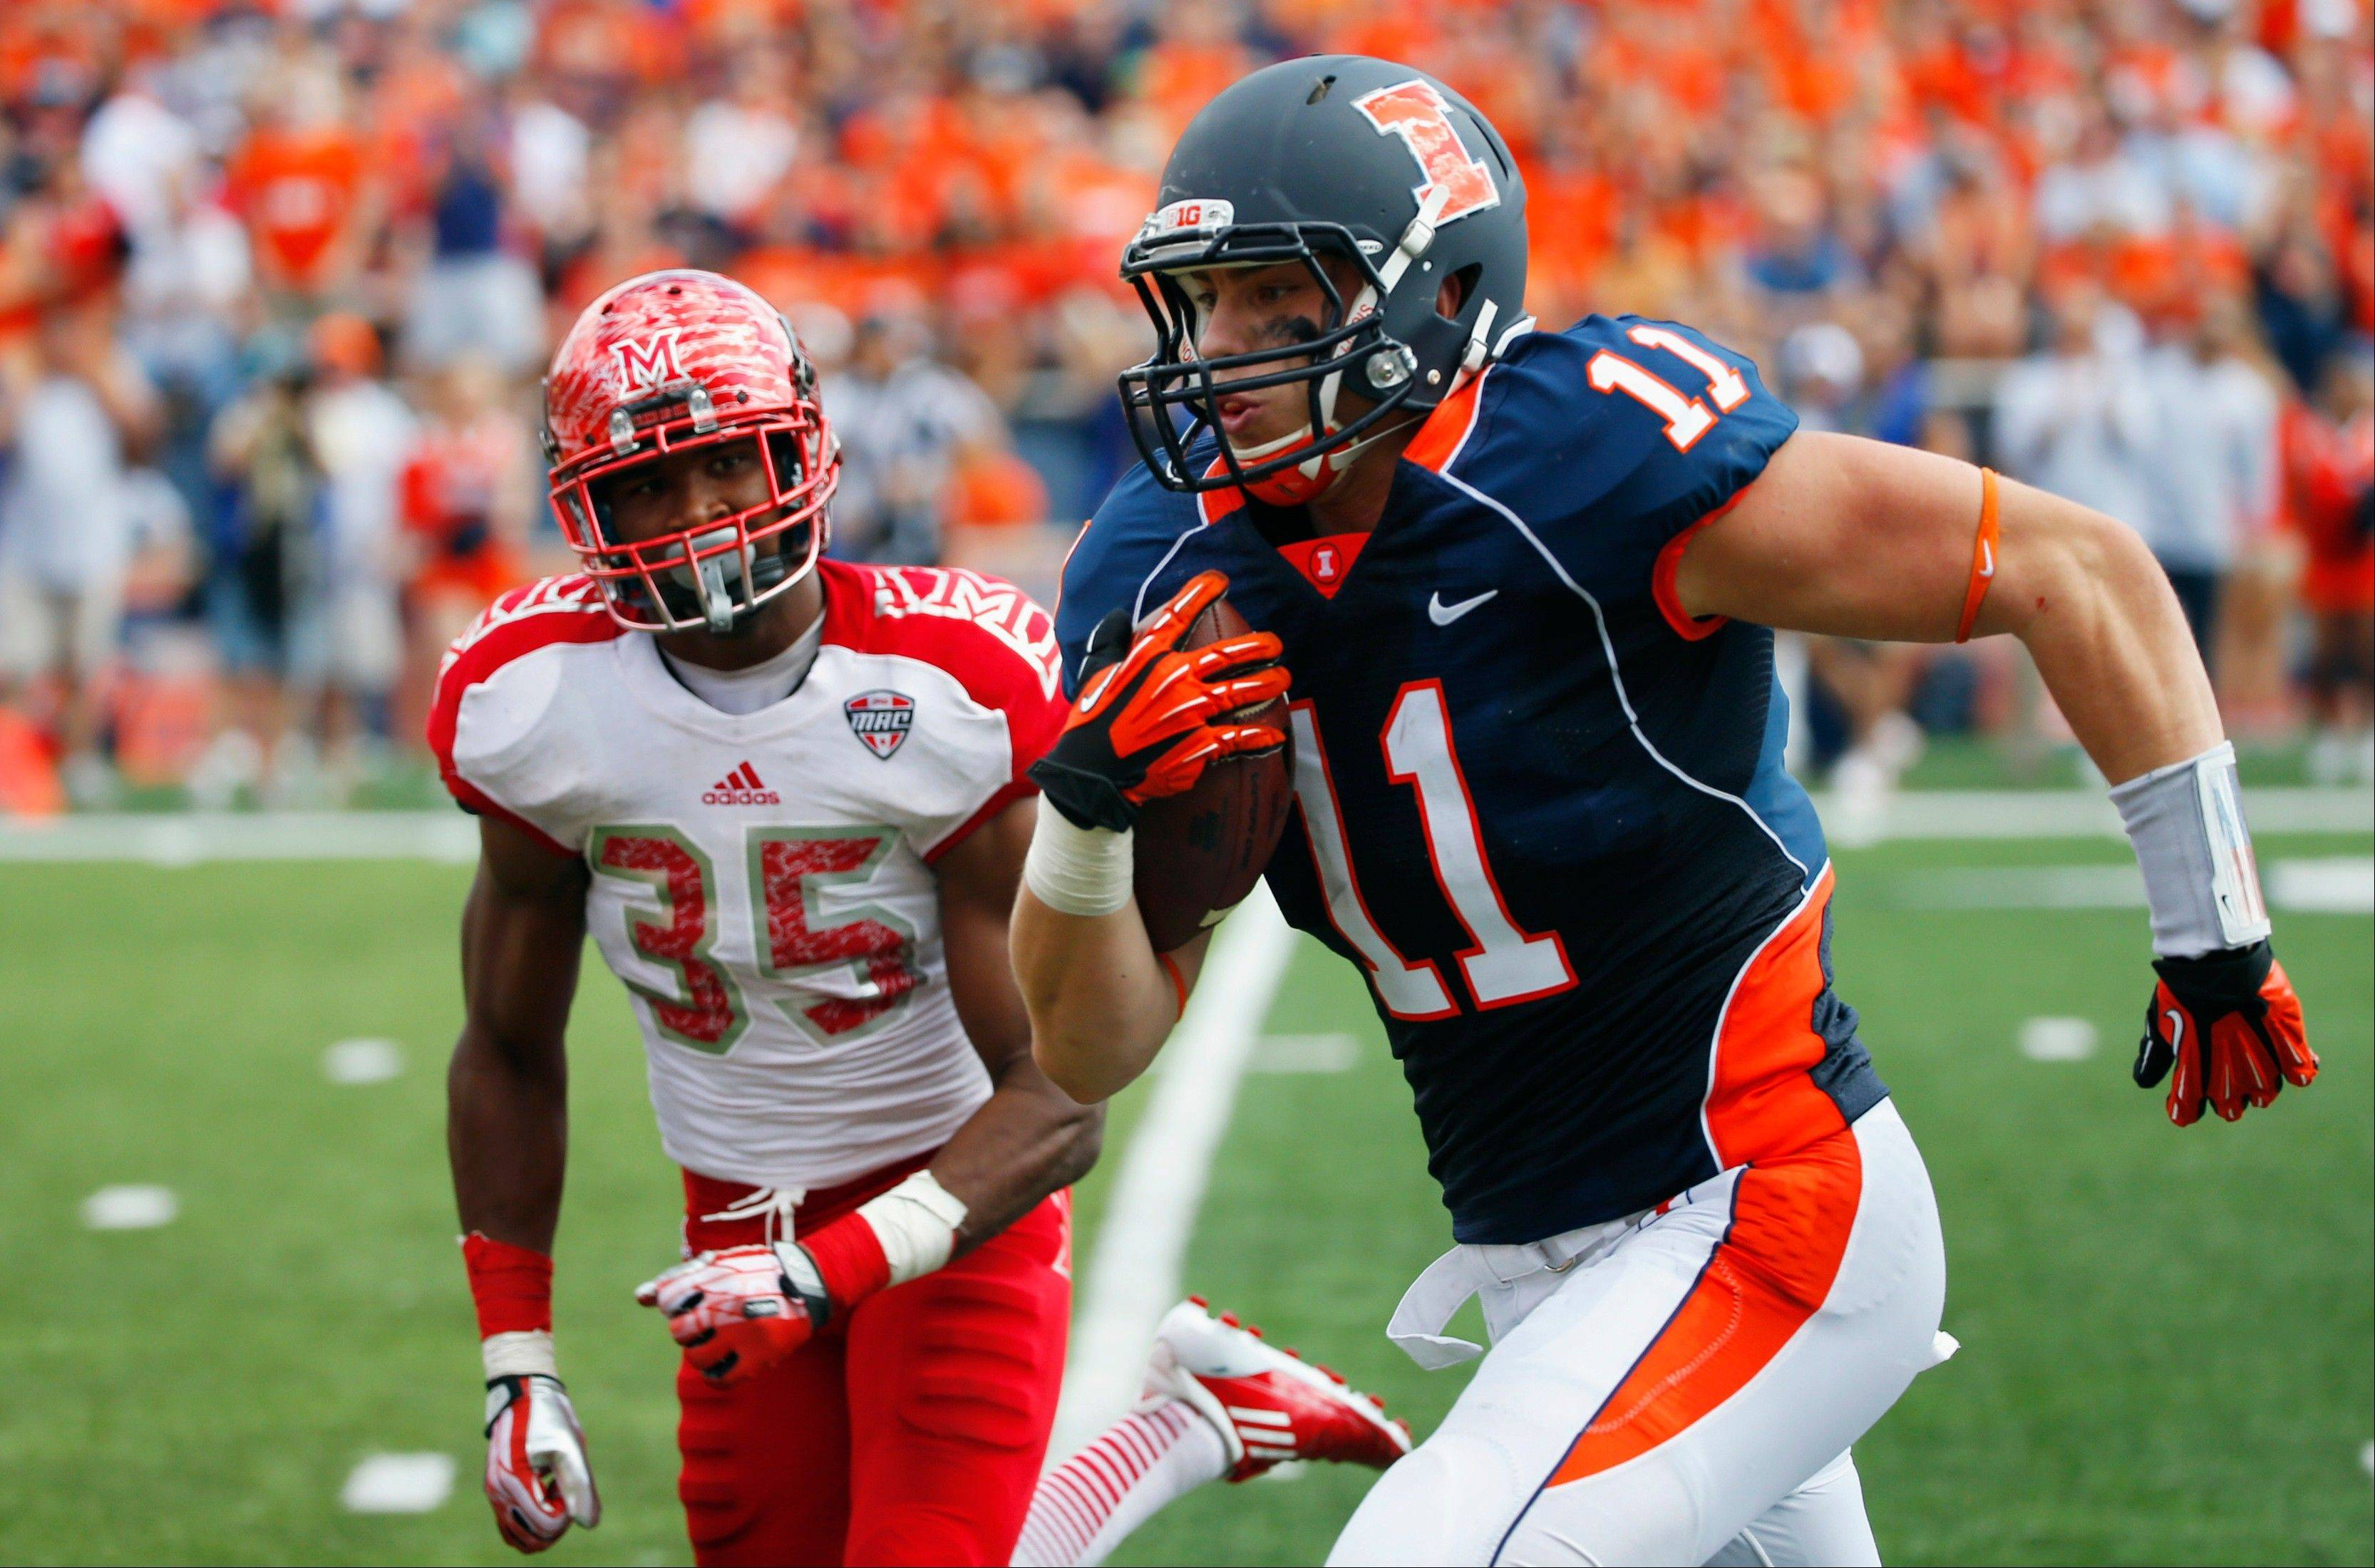 Illini finally utilizing tight ends